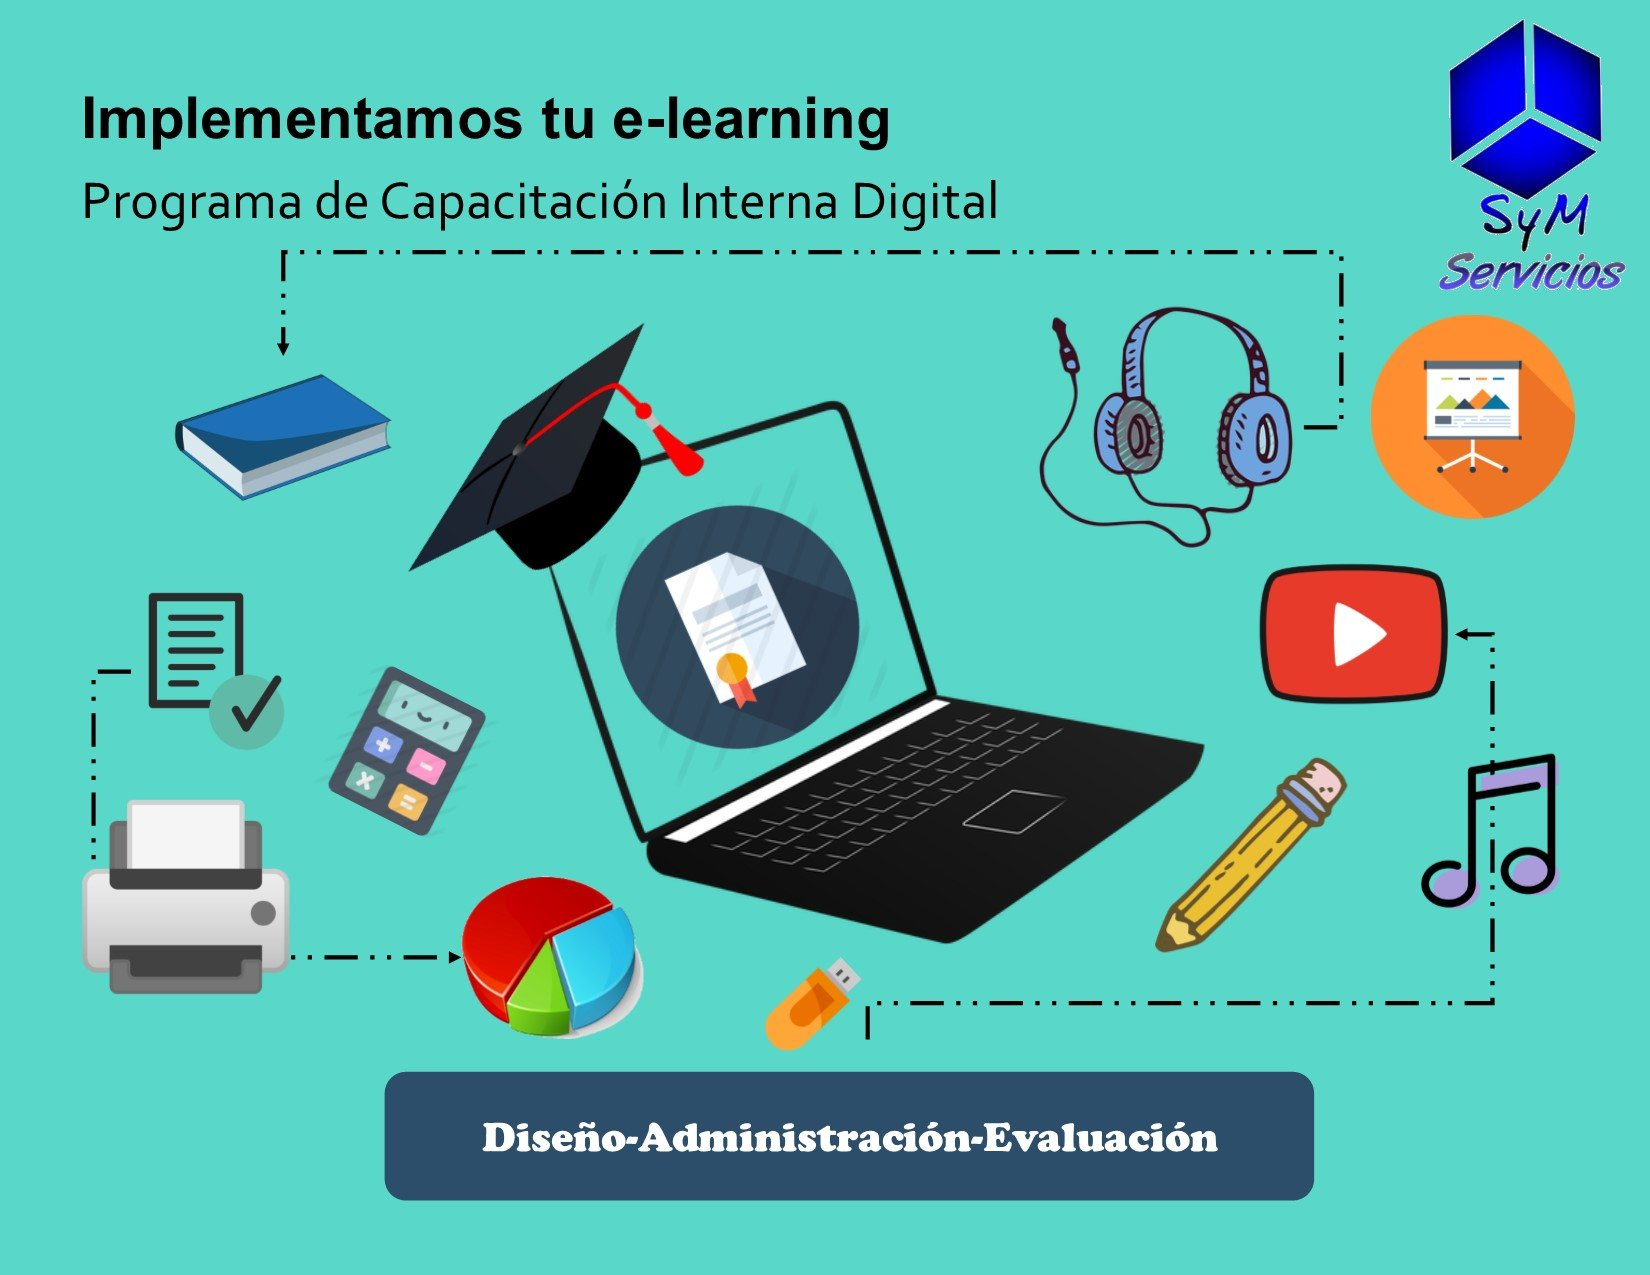 https://0201.nccdn.net/1_2/000/000/0dc/eaa/Creamos-tu-e-learning.jpg